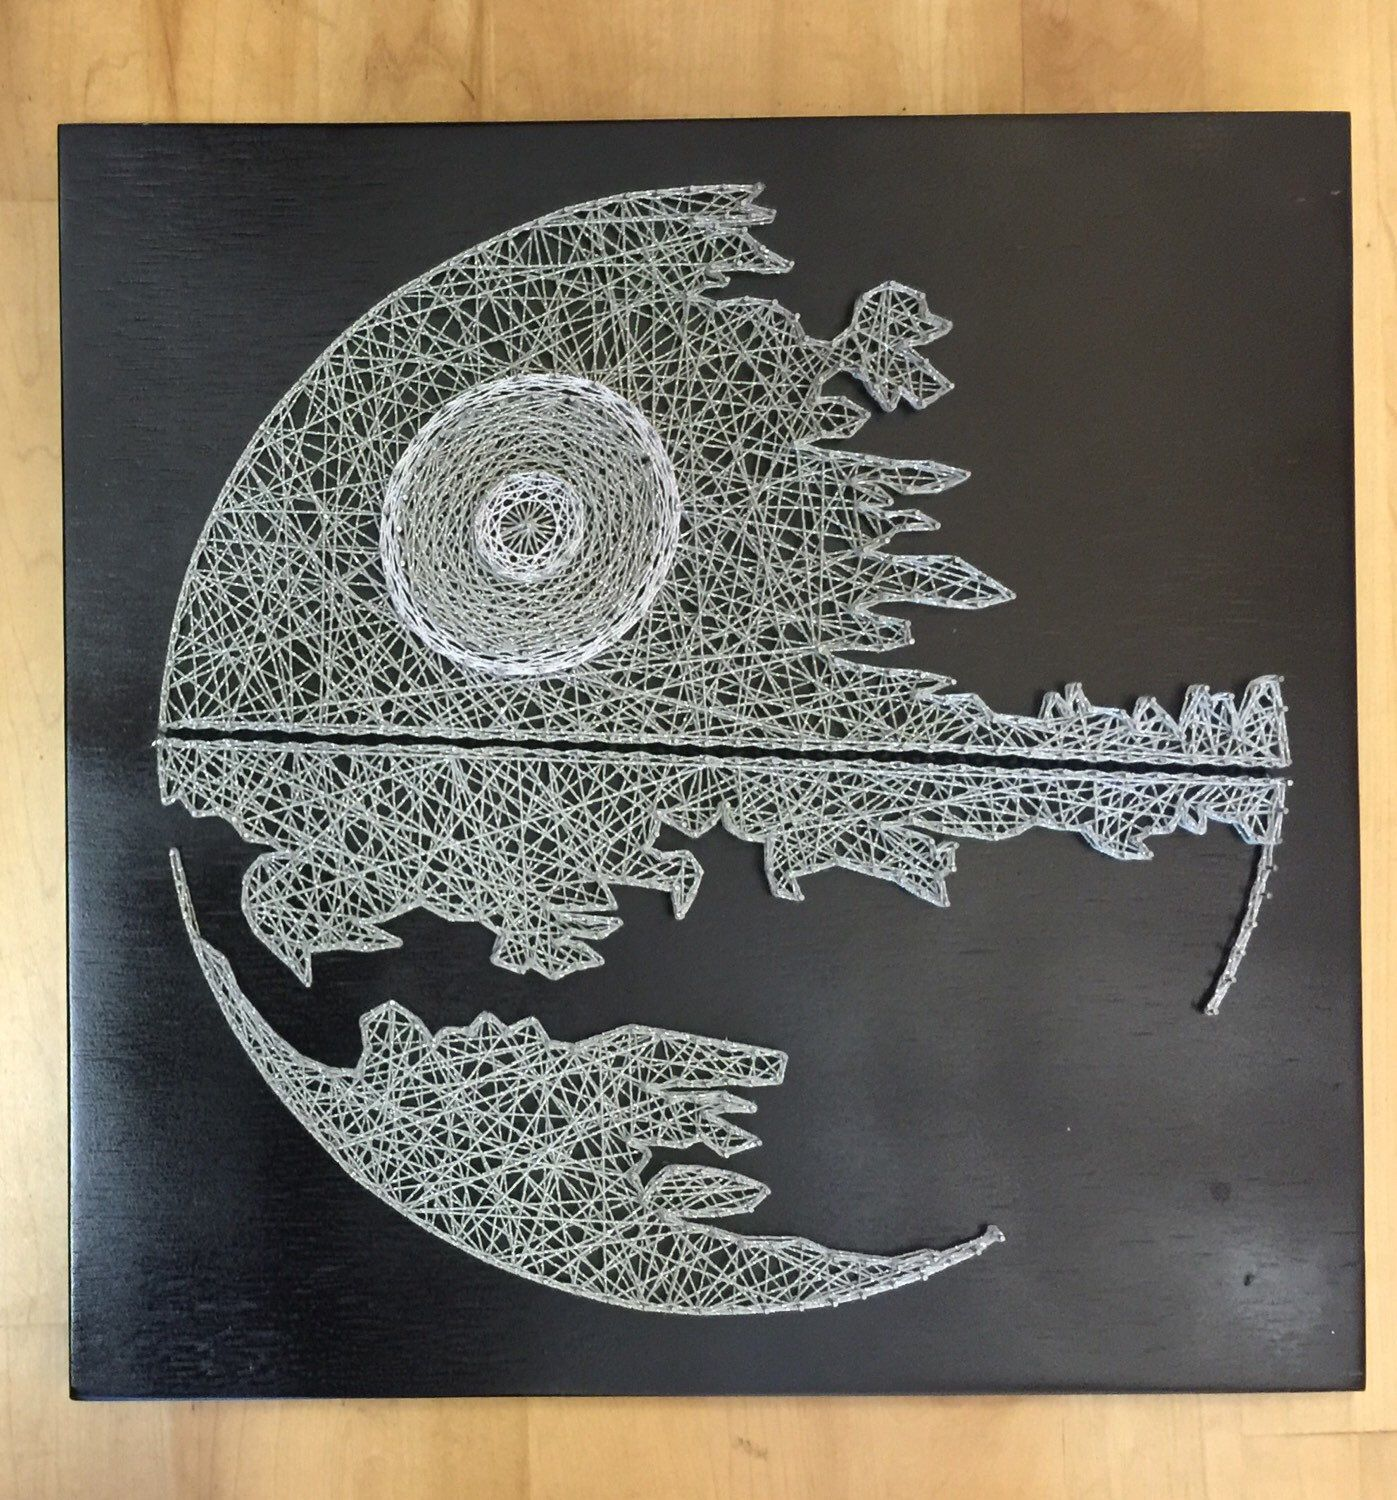 Star Wars Death Star String Art | String art, Death star and Death